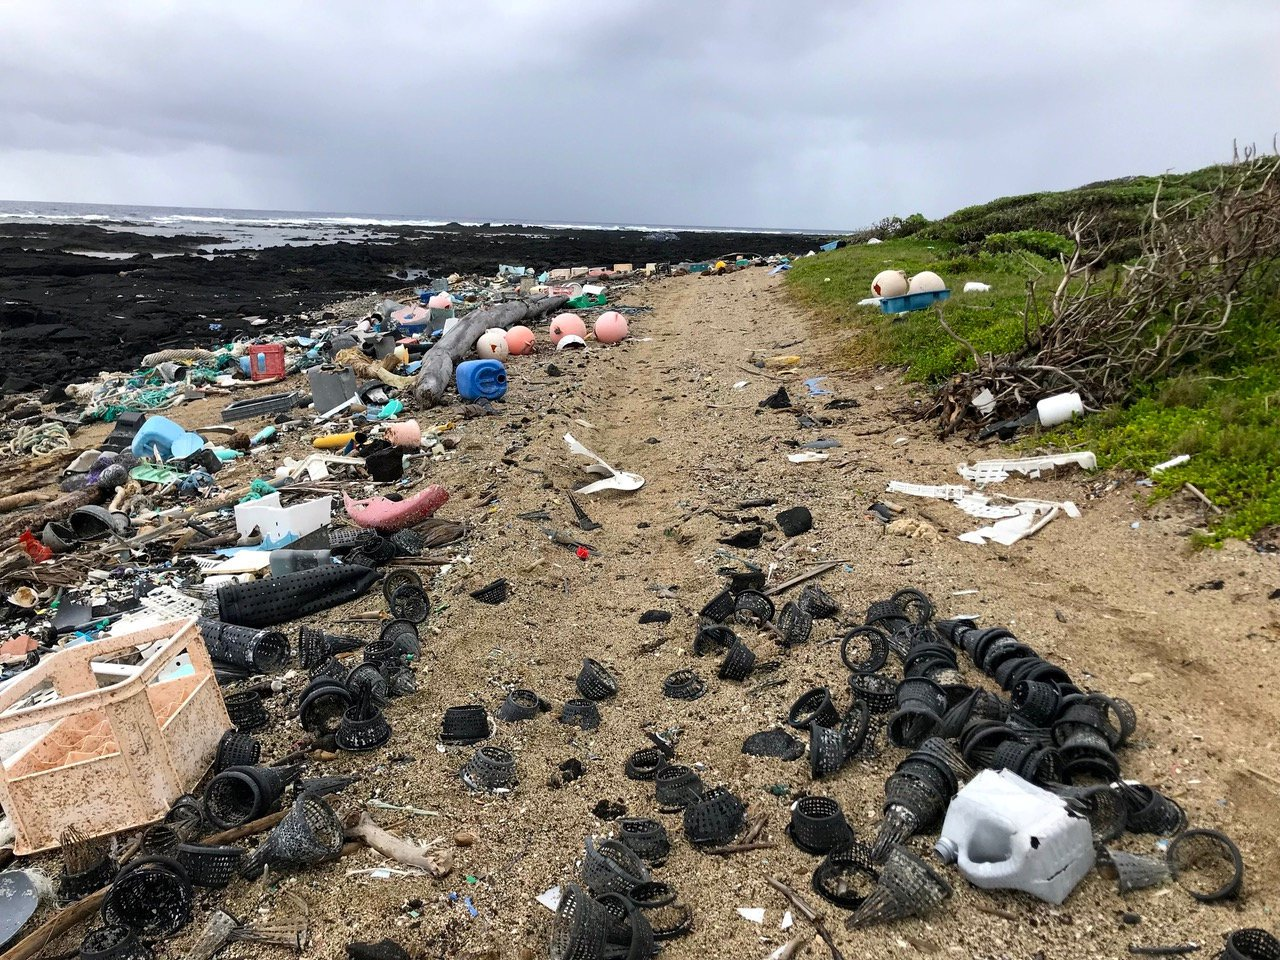 EMBARGOED FOR RELEASE: 1-AUG-2018 7PM BST/14:00 ET This is plastic pollution at Kamilo Point, Big Island, Hawaii on Feb. 14, 2018. Plastic food packaging contains hundreds of different toxic chemicals including dangerous cancer-causing heavy metals and gender bending substances , a new study warned. See SWNS story NNPLASTICS; Plastic used in trays, wrappings around fruit and vegetables and cheeses and other food packets had 4,283 individual chemicals of which 148 highly hazardous substances. Among these 148 hazardous chemicals were cadmium, chromium, lead and mercury, which are considered to be highly dangerous as they are cancer-causing carcinogens and can cause permanent changes to the genetic make-up of cells. These metals can also have adverse effects on fertility and sexual function and are ranked as the most hazardous to human health or the environment, based on EU toxicity classifications.